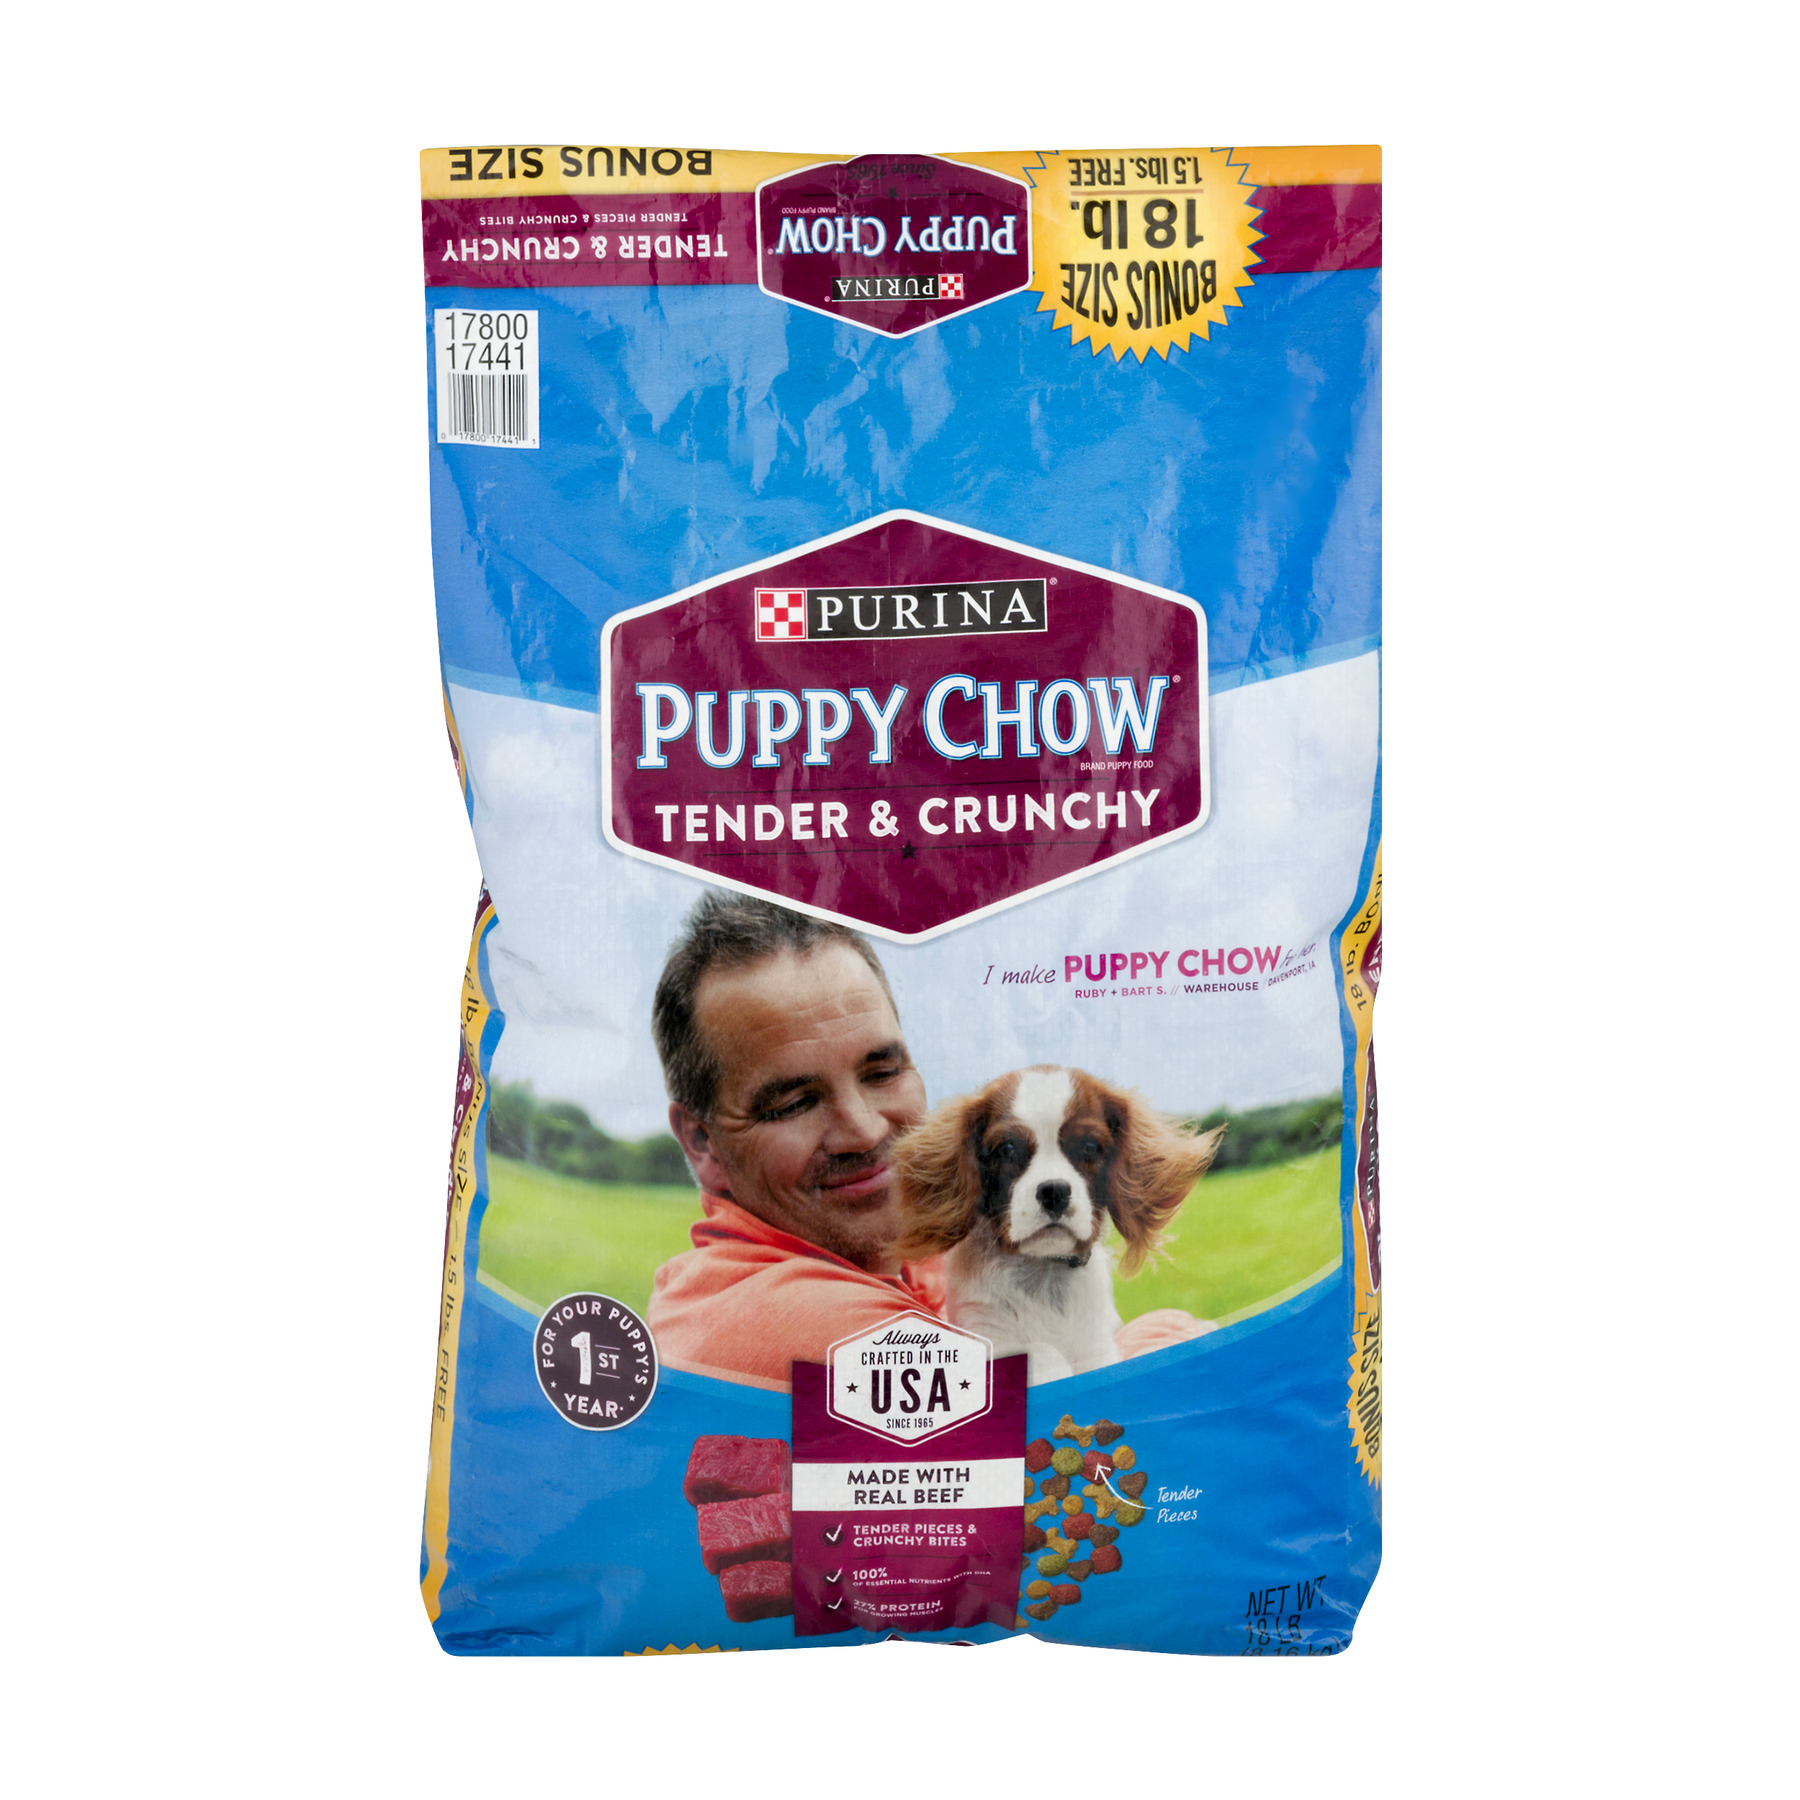 Purina Puppy Chow Tender and Crunchy Puppy Food 18 lb. Bonus Bag